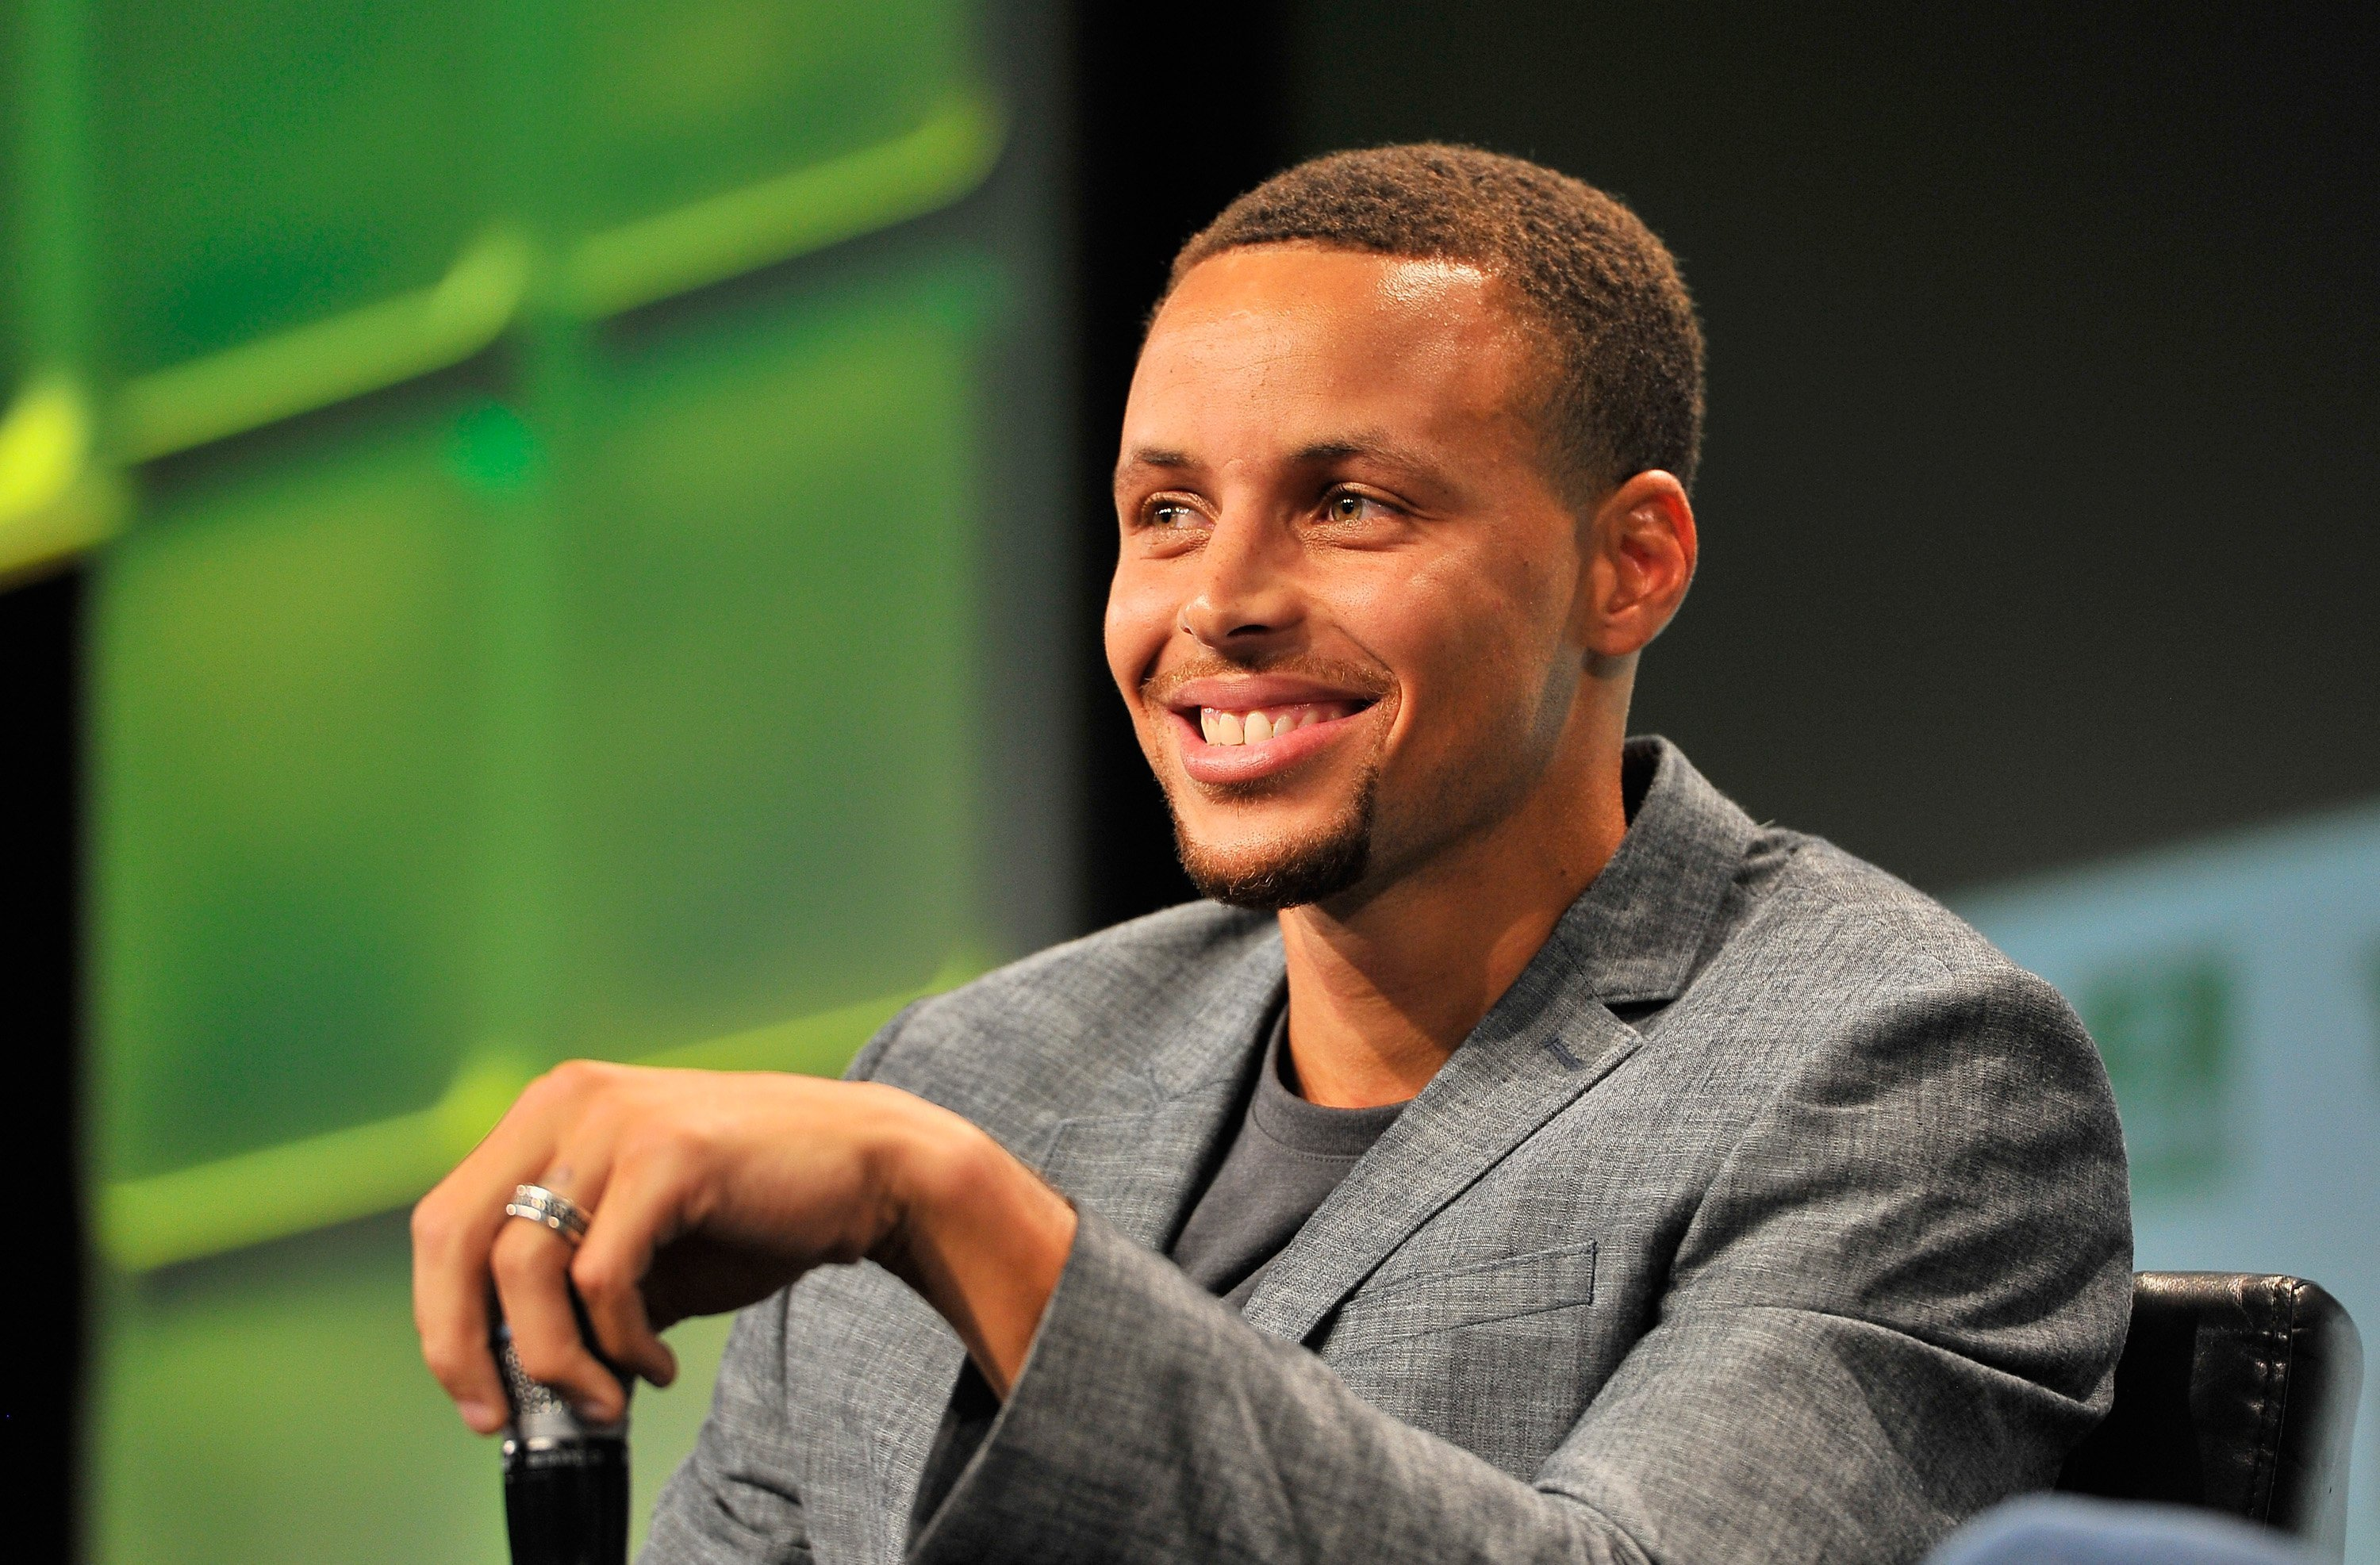 Stephen Curry during a speaking engagement in San Francisco in September 2016. | Photo: Getty Images